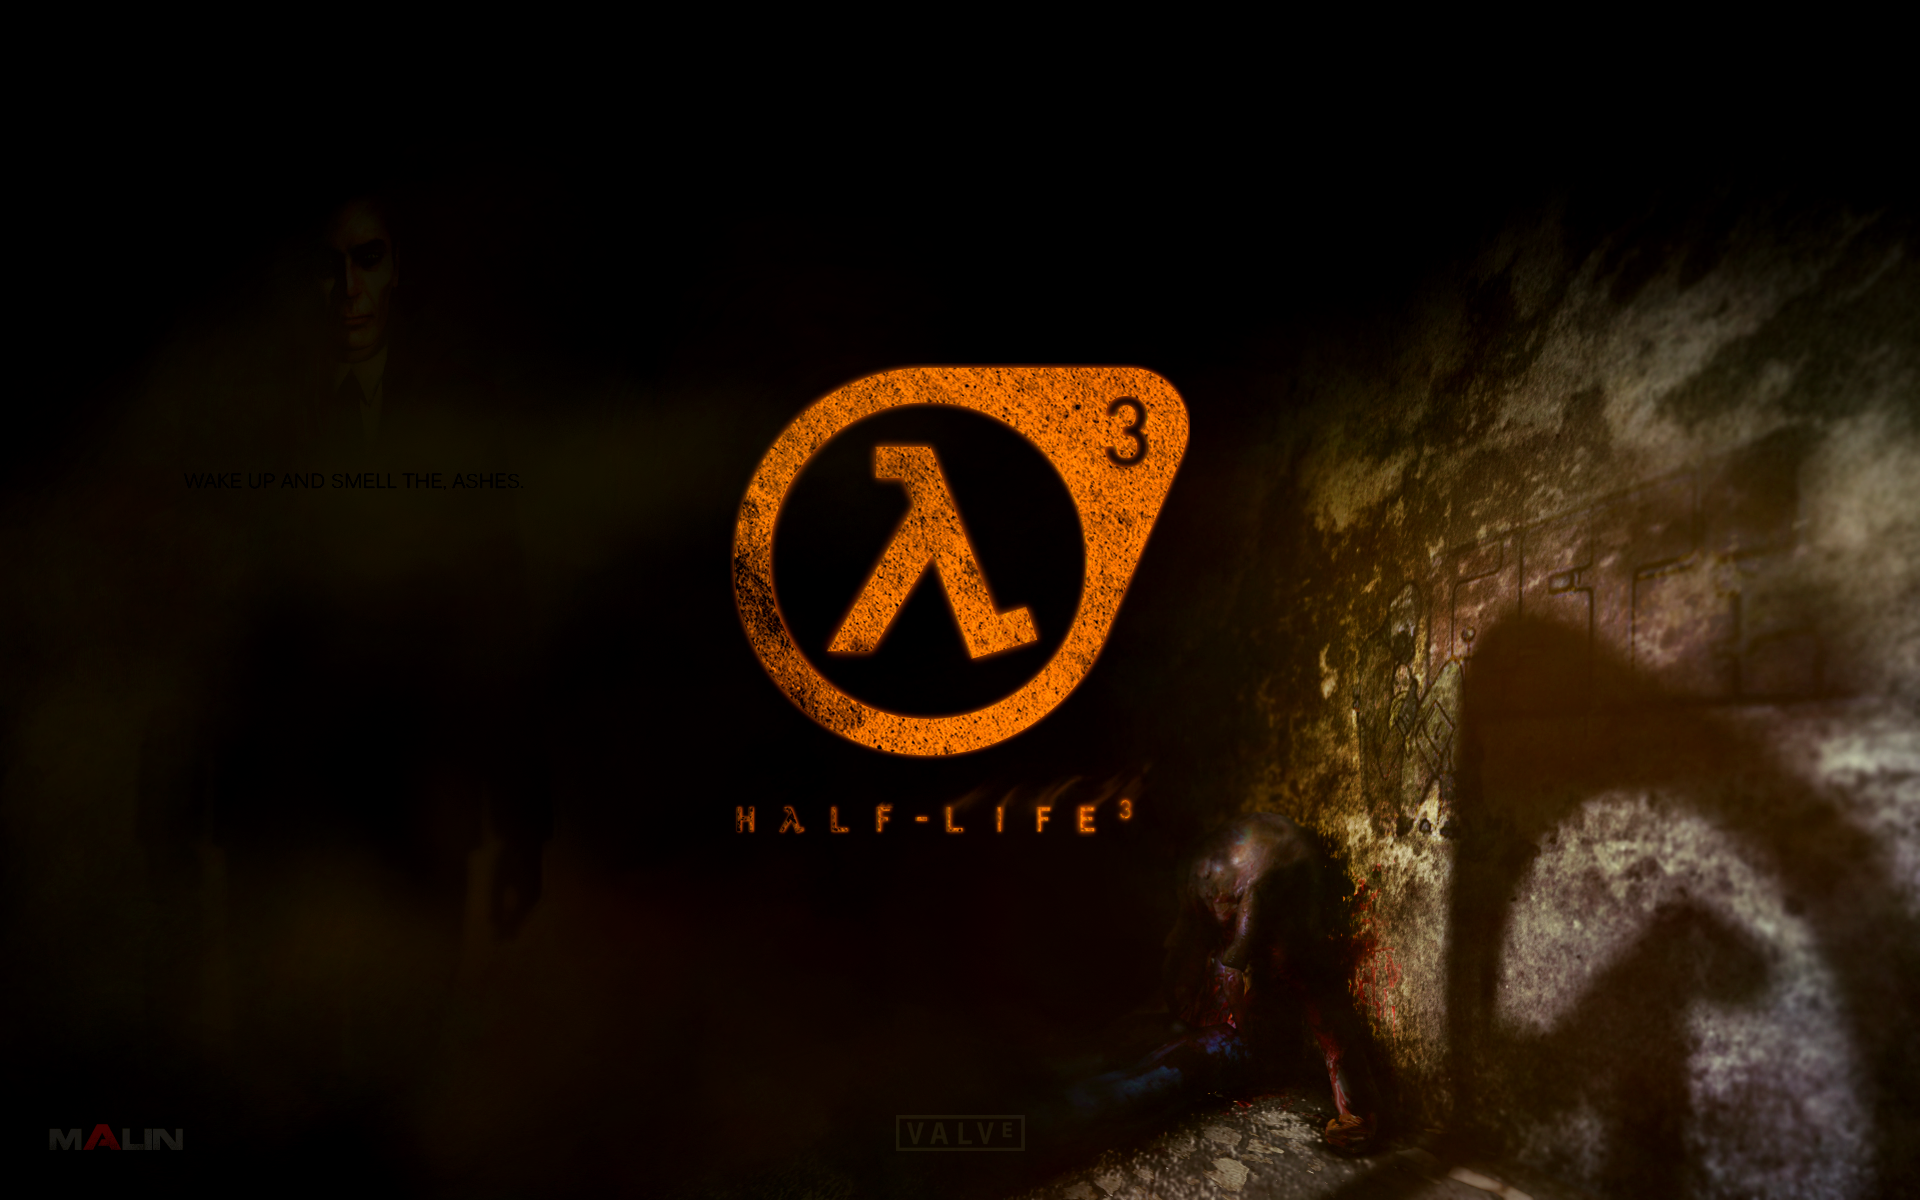 ... Half-Life 3 Logo with The G-Man 16:10 wallpaper by brett1990